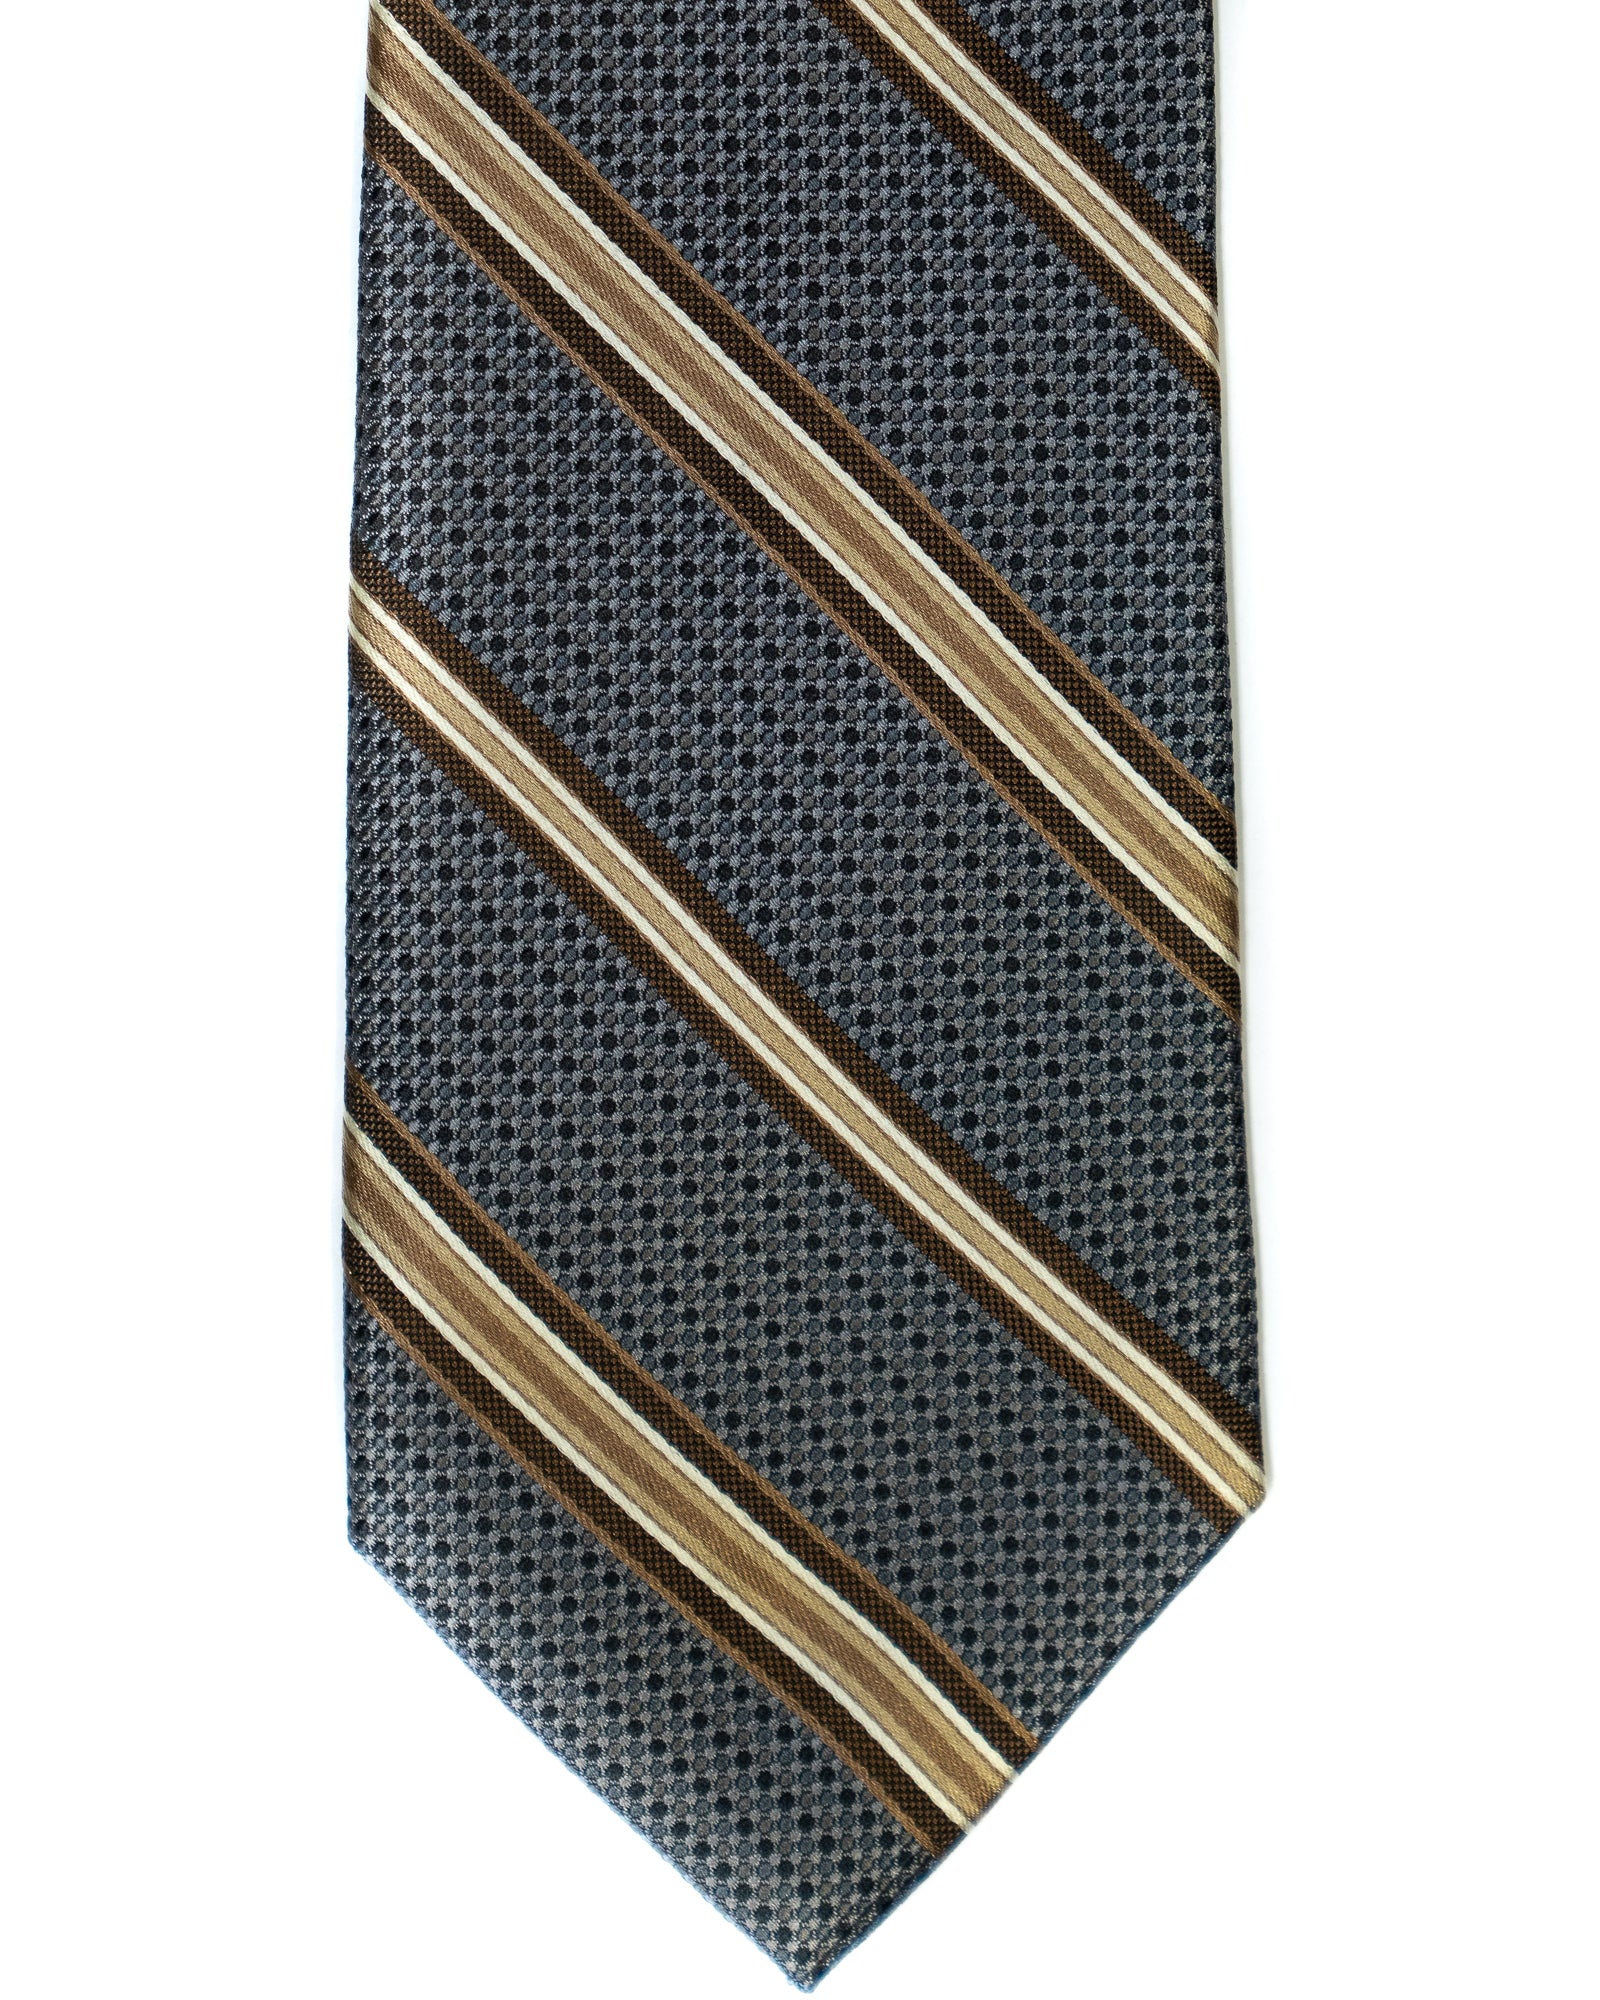 Silk Tie In Grey With Brown Stripes - Rainwater's